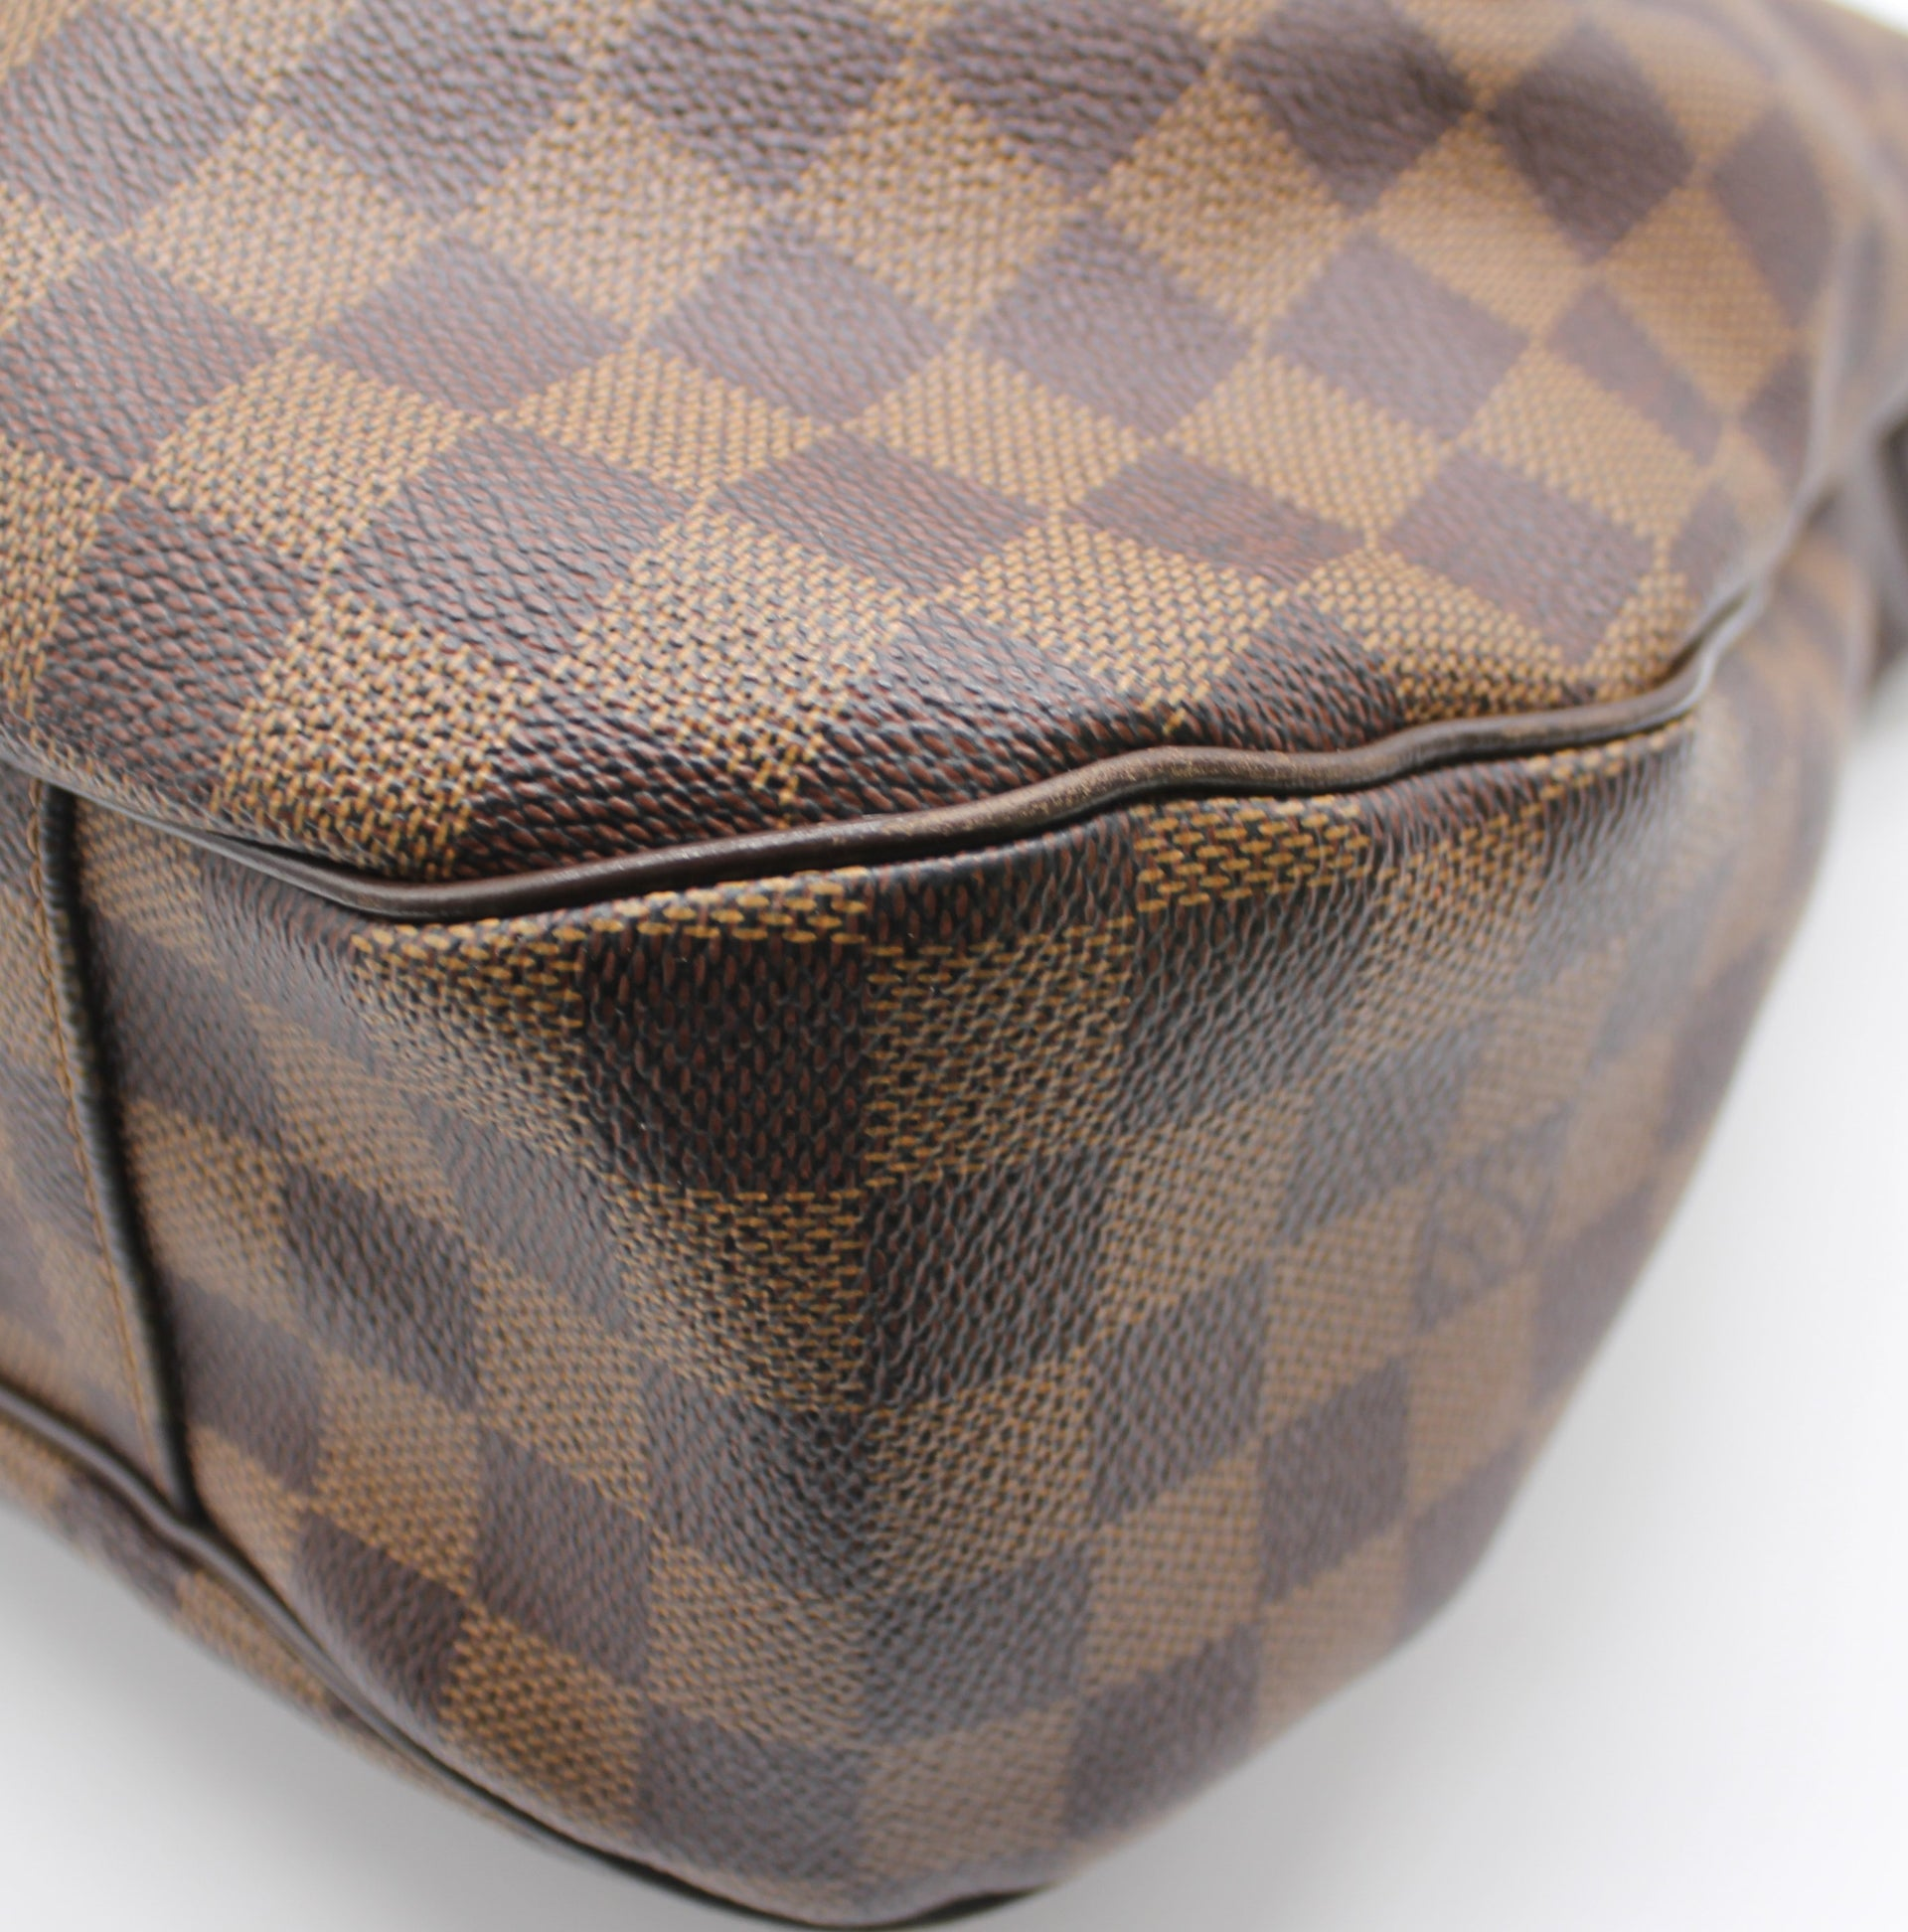 Louis Vuitton Damier Ebene Evora MM Bag